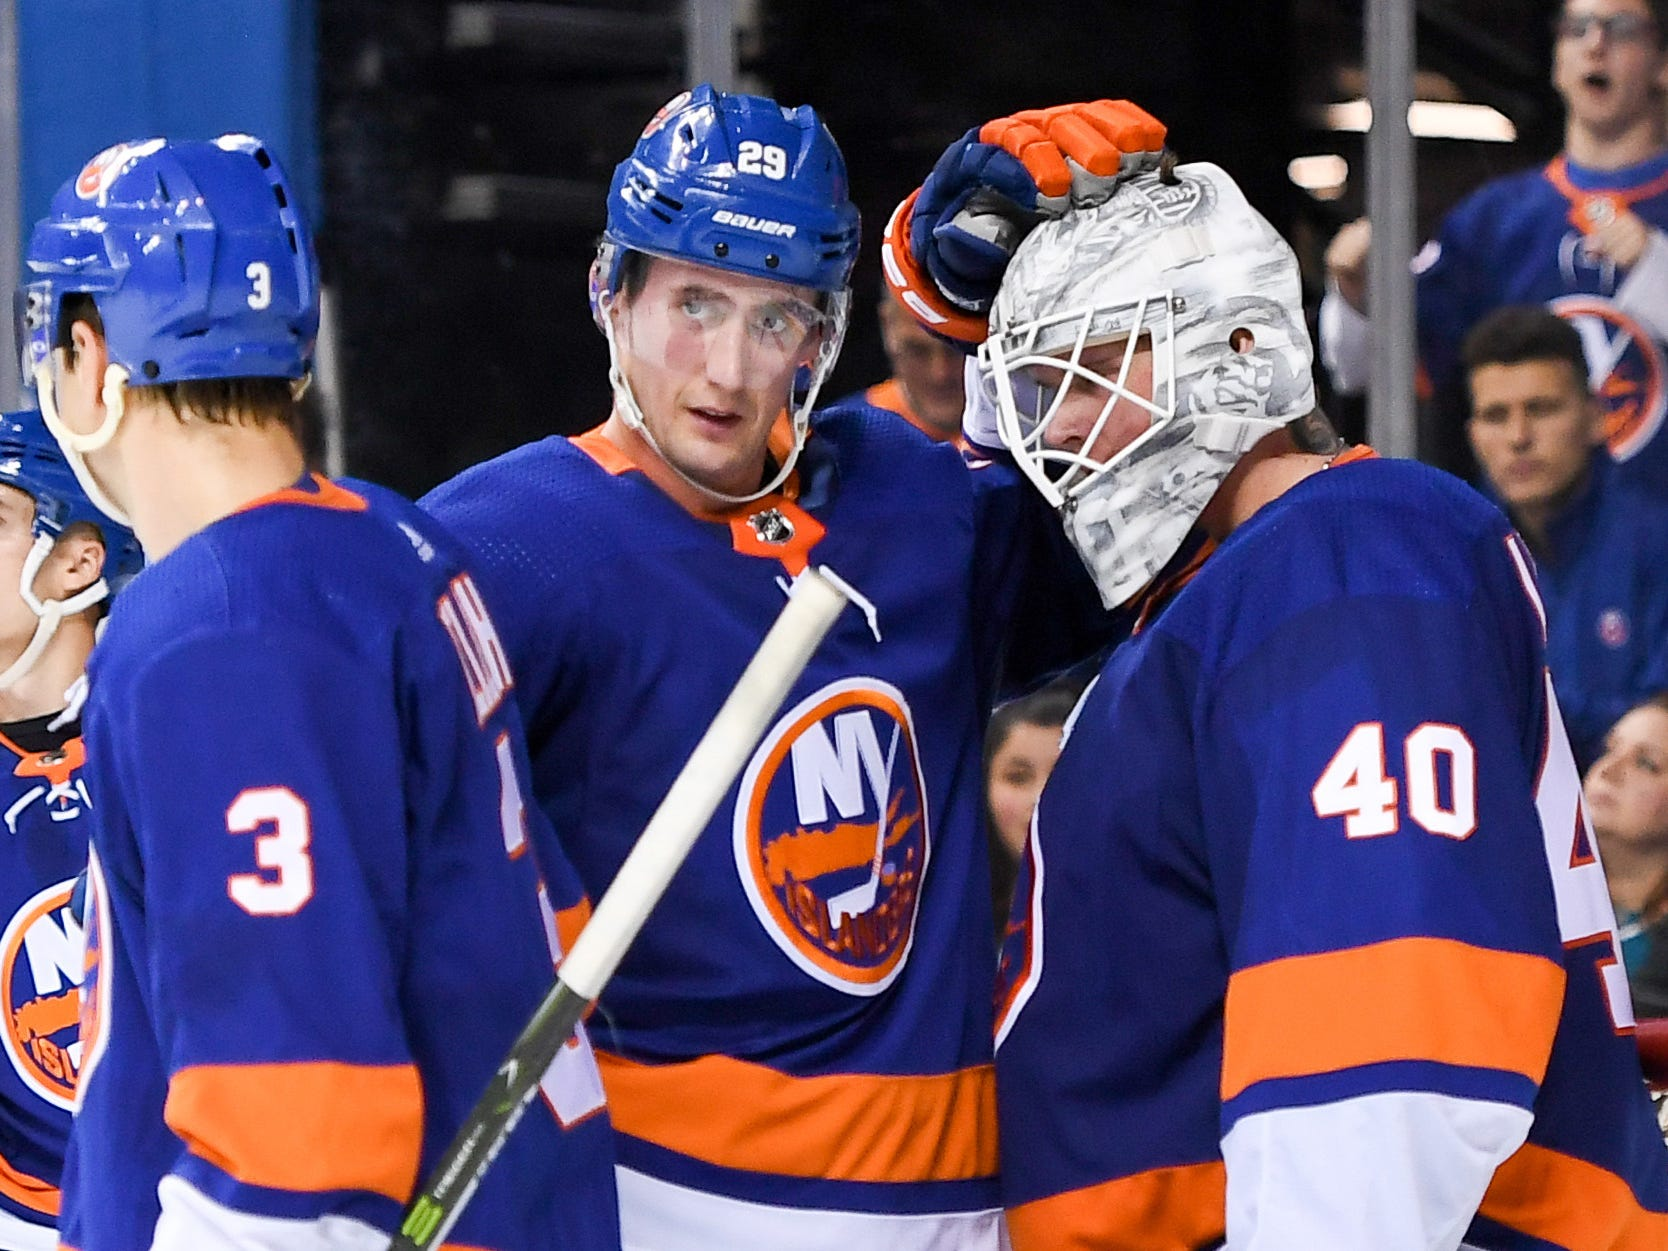 Oct 8. Goaltender Robin Lehner, right, is congratulated after getting a shutout in his Islanders debut. He made 35 saves in his first game since he left a March game with Buffalo because of a panic attack.